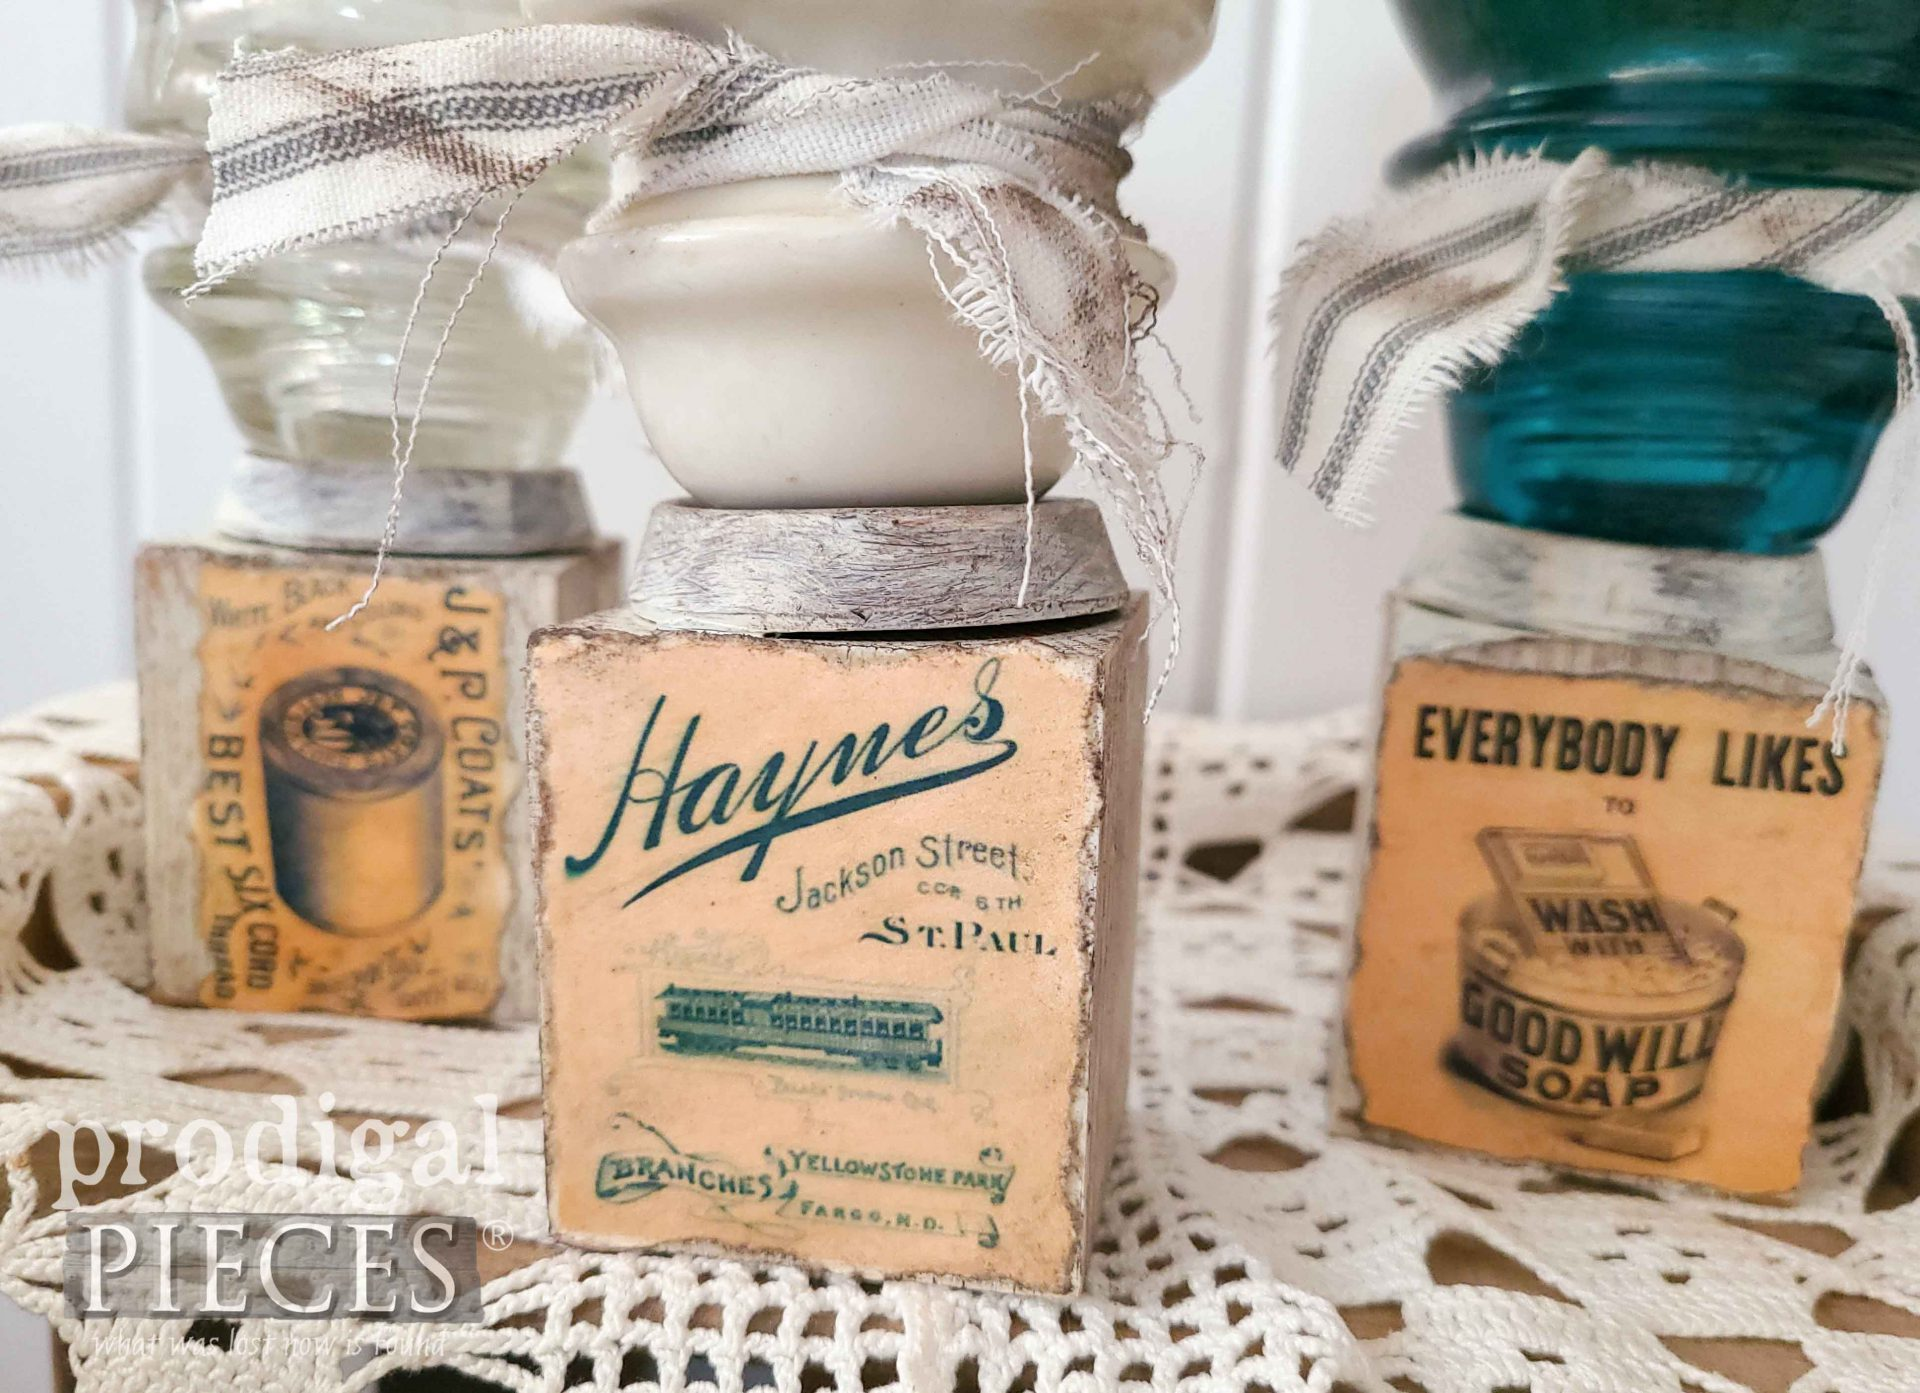 Vintage Advertisement Labels on Upcycled Candle Holders by Larissa of Prodigal Pieces | prodigalpieces.com #prodigalpieces #farmhouse #homedecor #diy